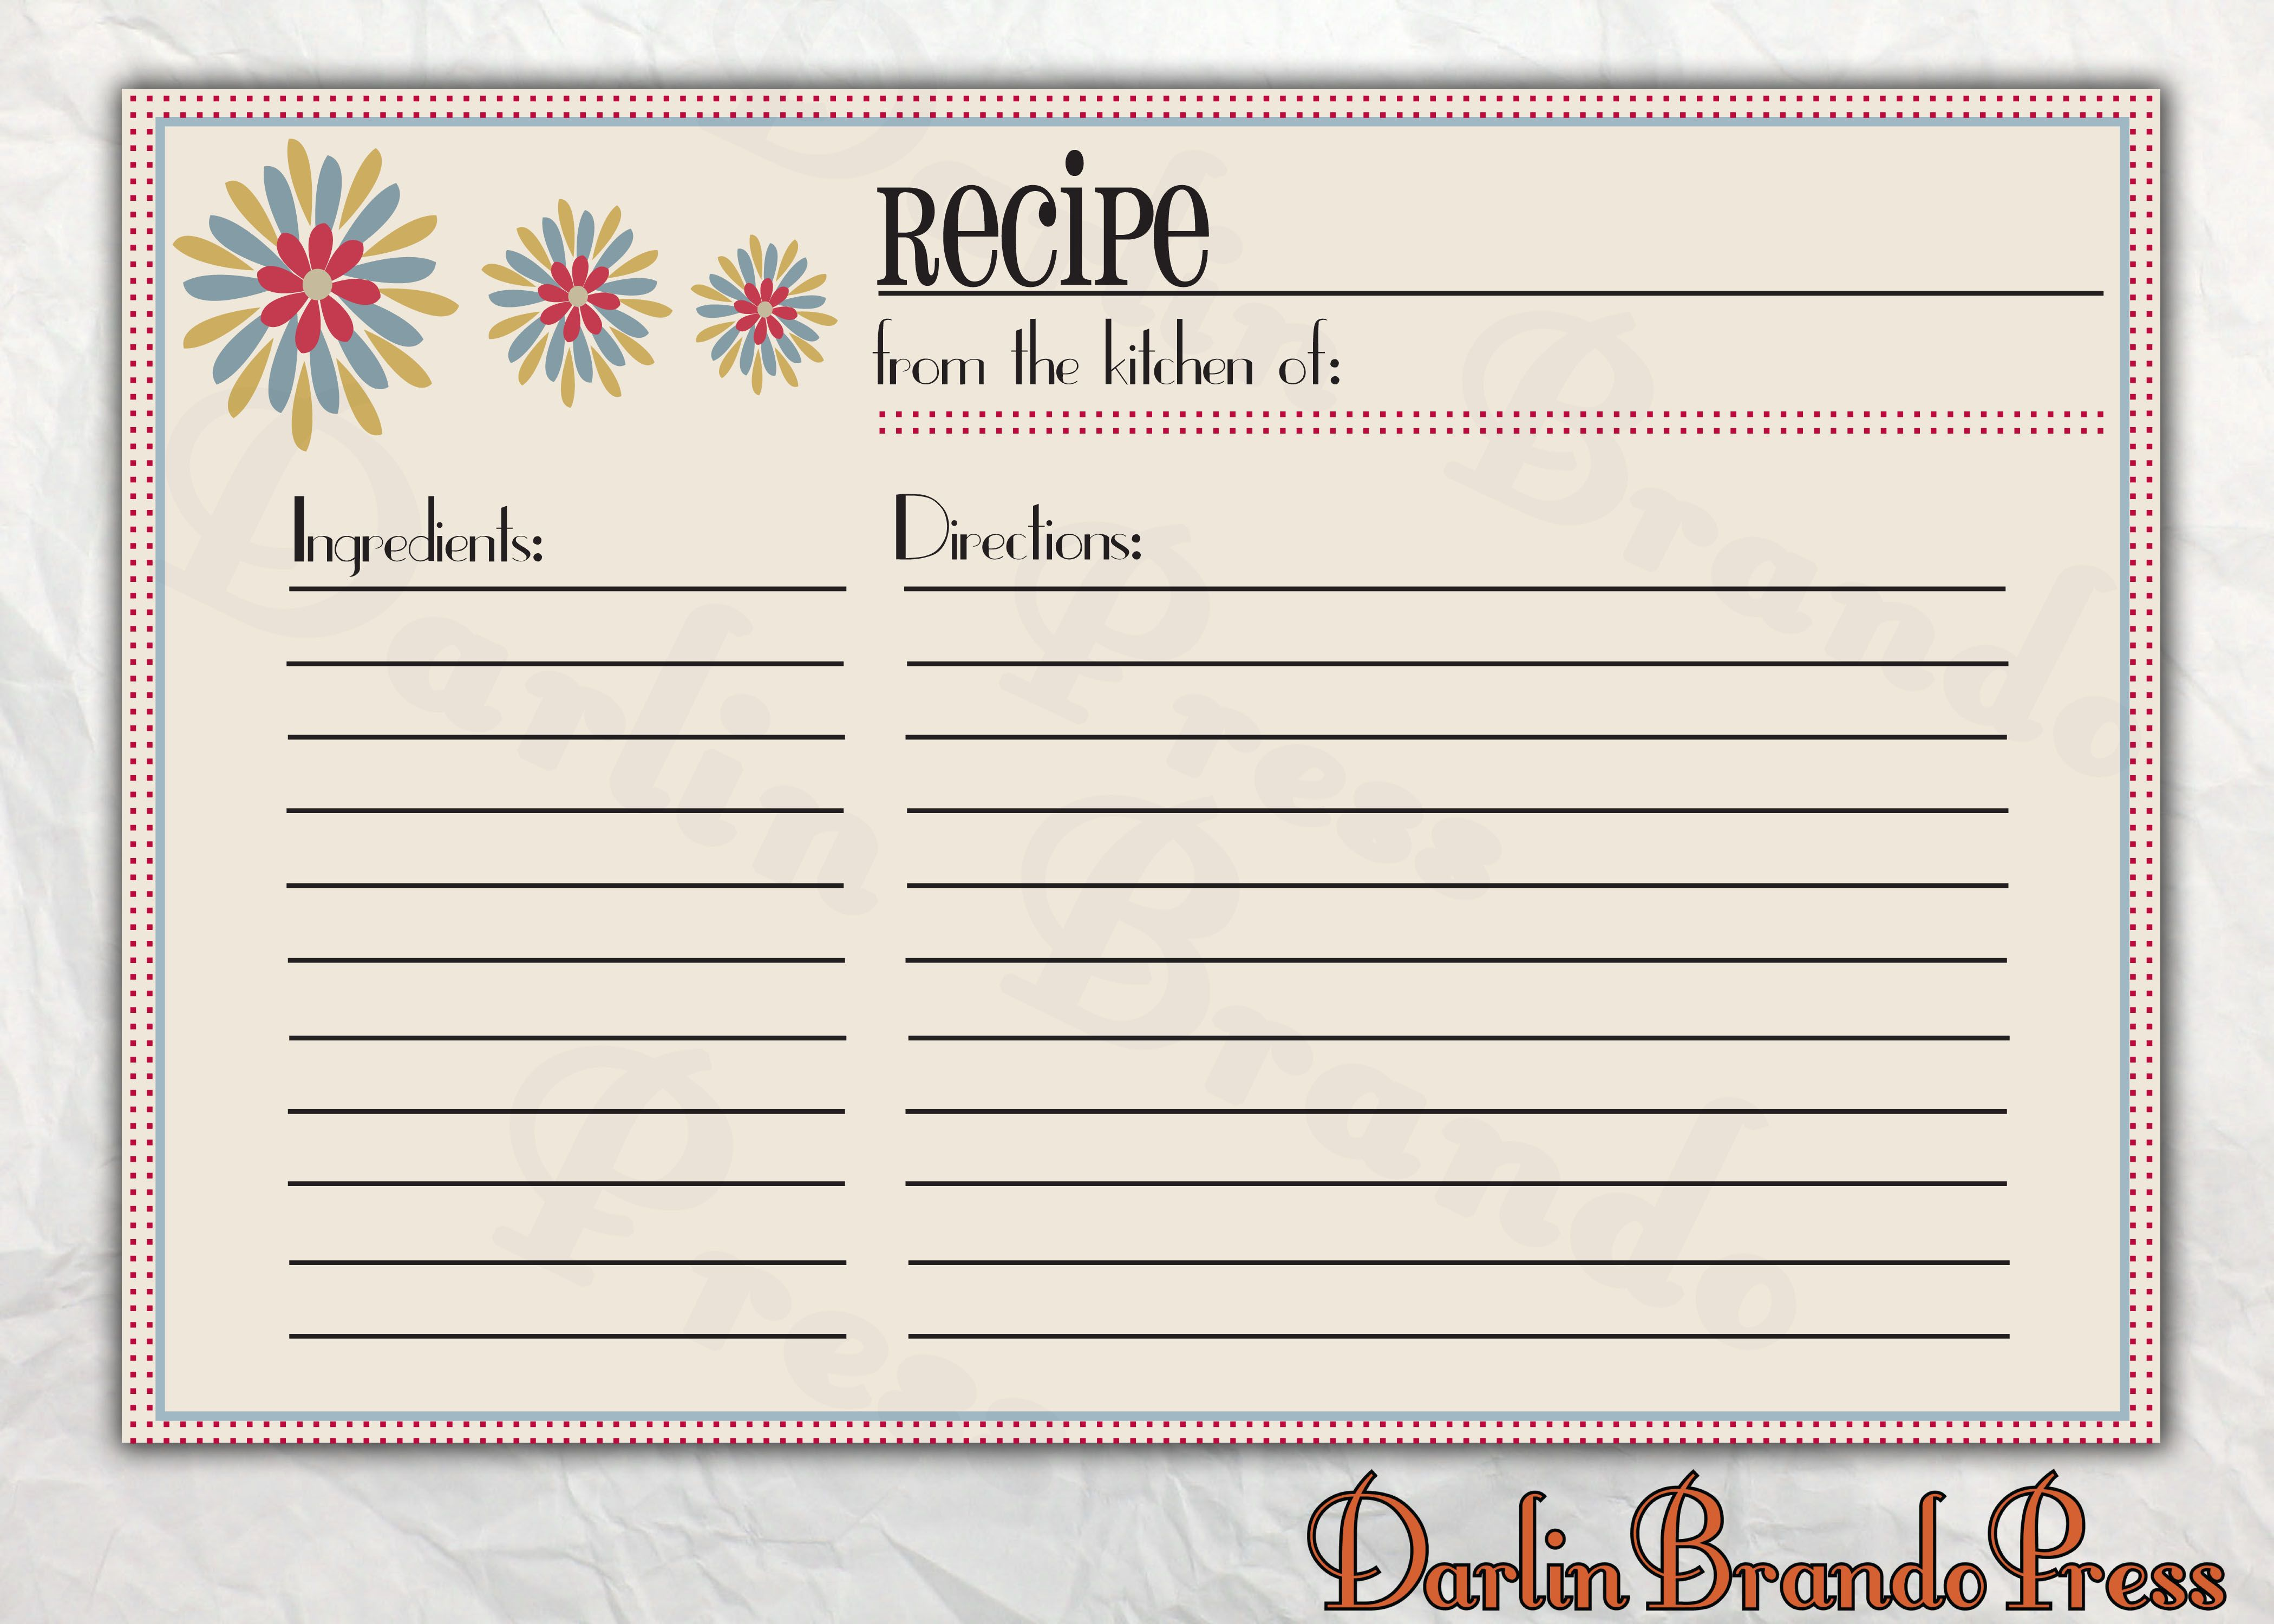 003 Excellent M Word Recipe Template Photo  Microsoft Card 2010 Full PageFull